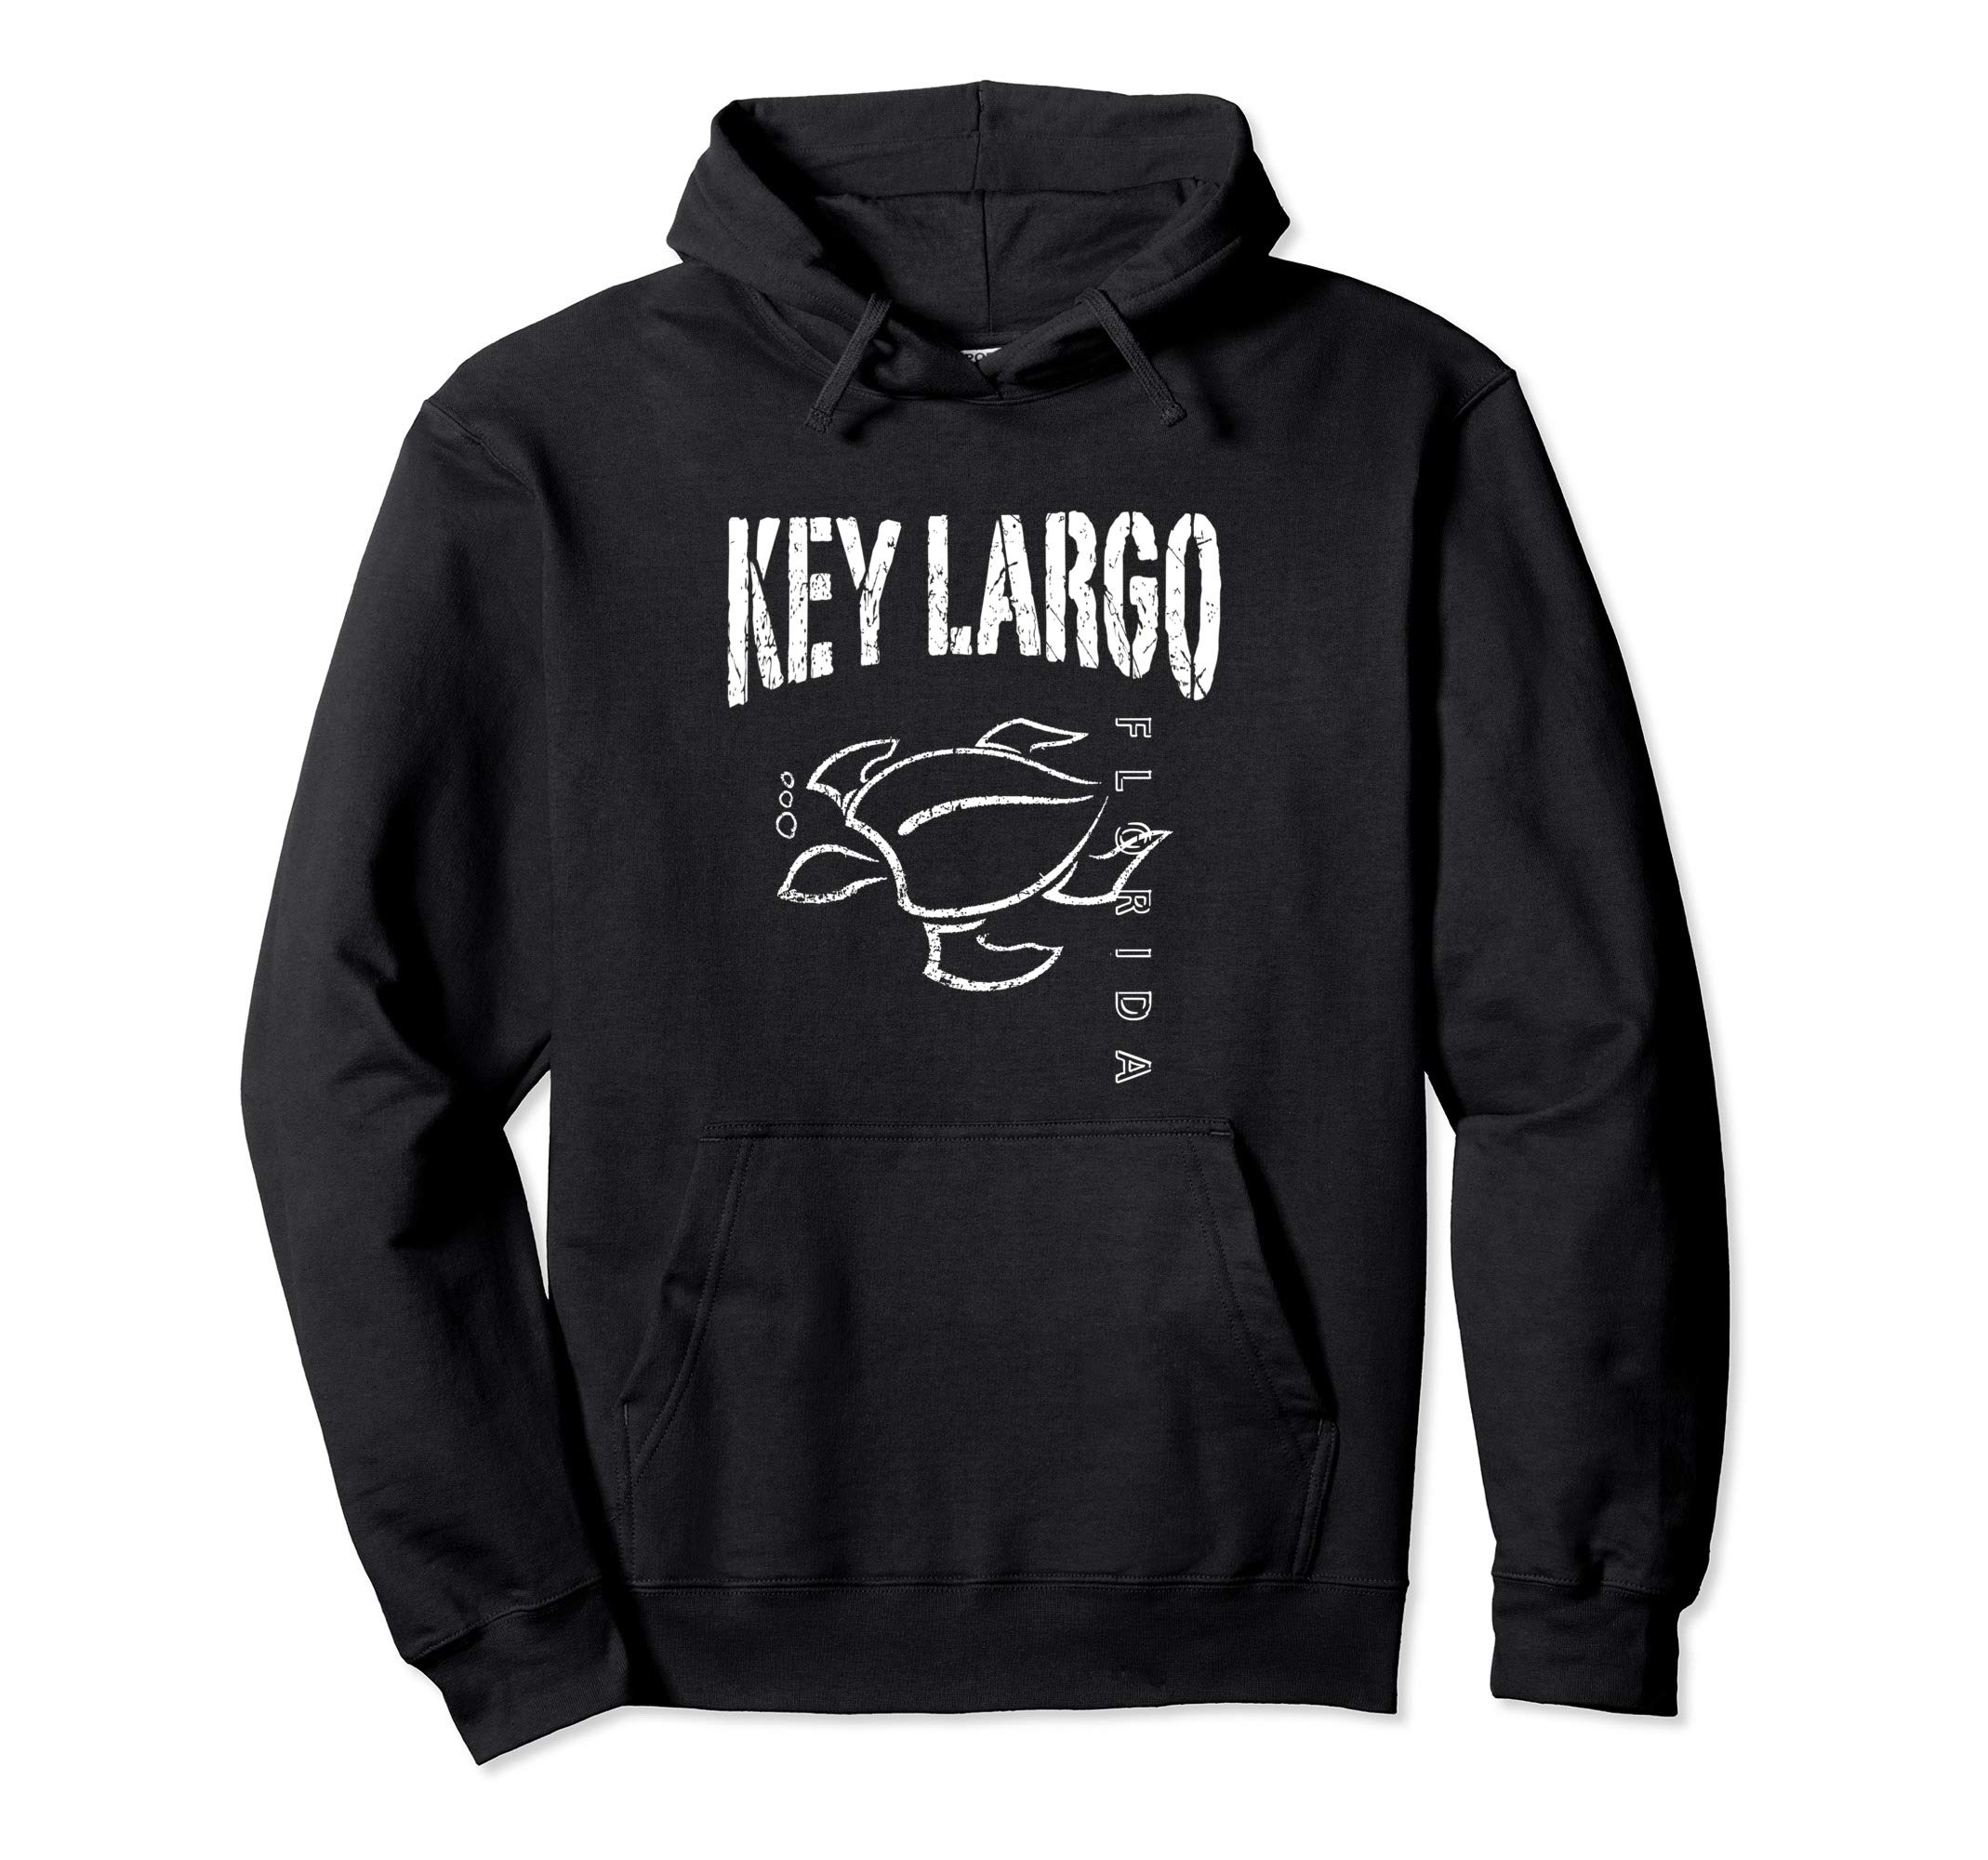 Key Largo Florida Souvenir Vacation Gift Sea Turtle Pullover Hoodie by KEY LARGO Souvenir Gift Florida Sailing FL